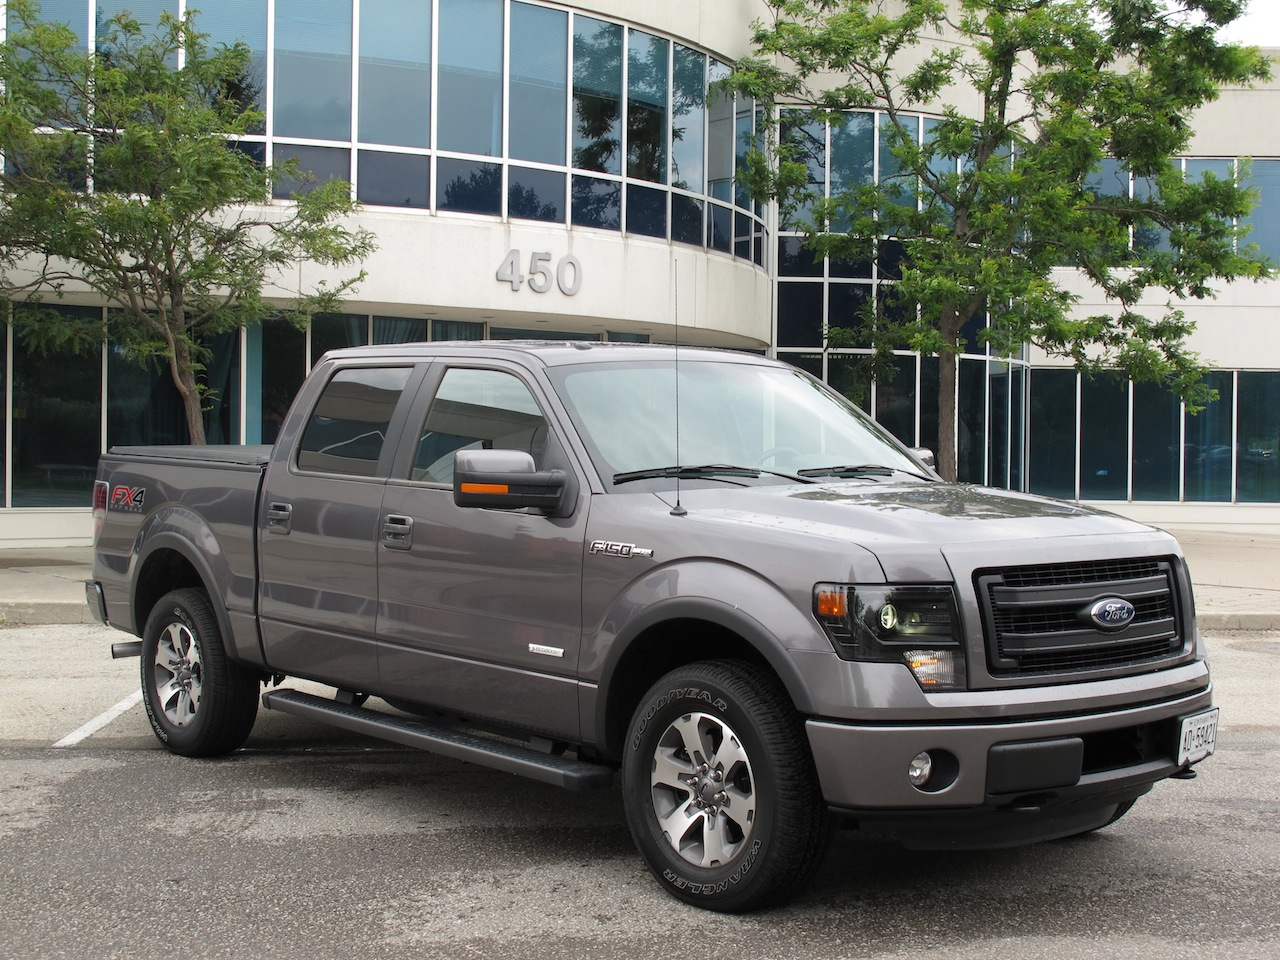 2013 ford f150 fx4 supercrew ecoboost front side view